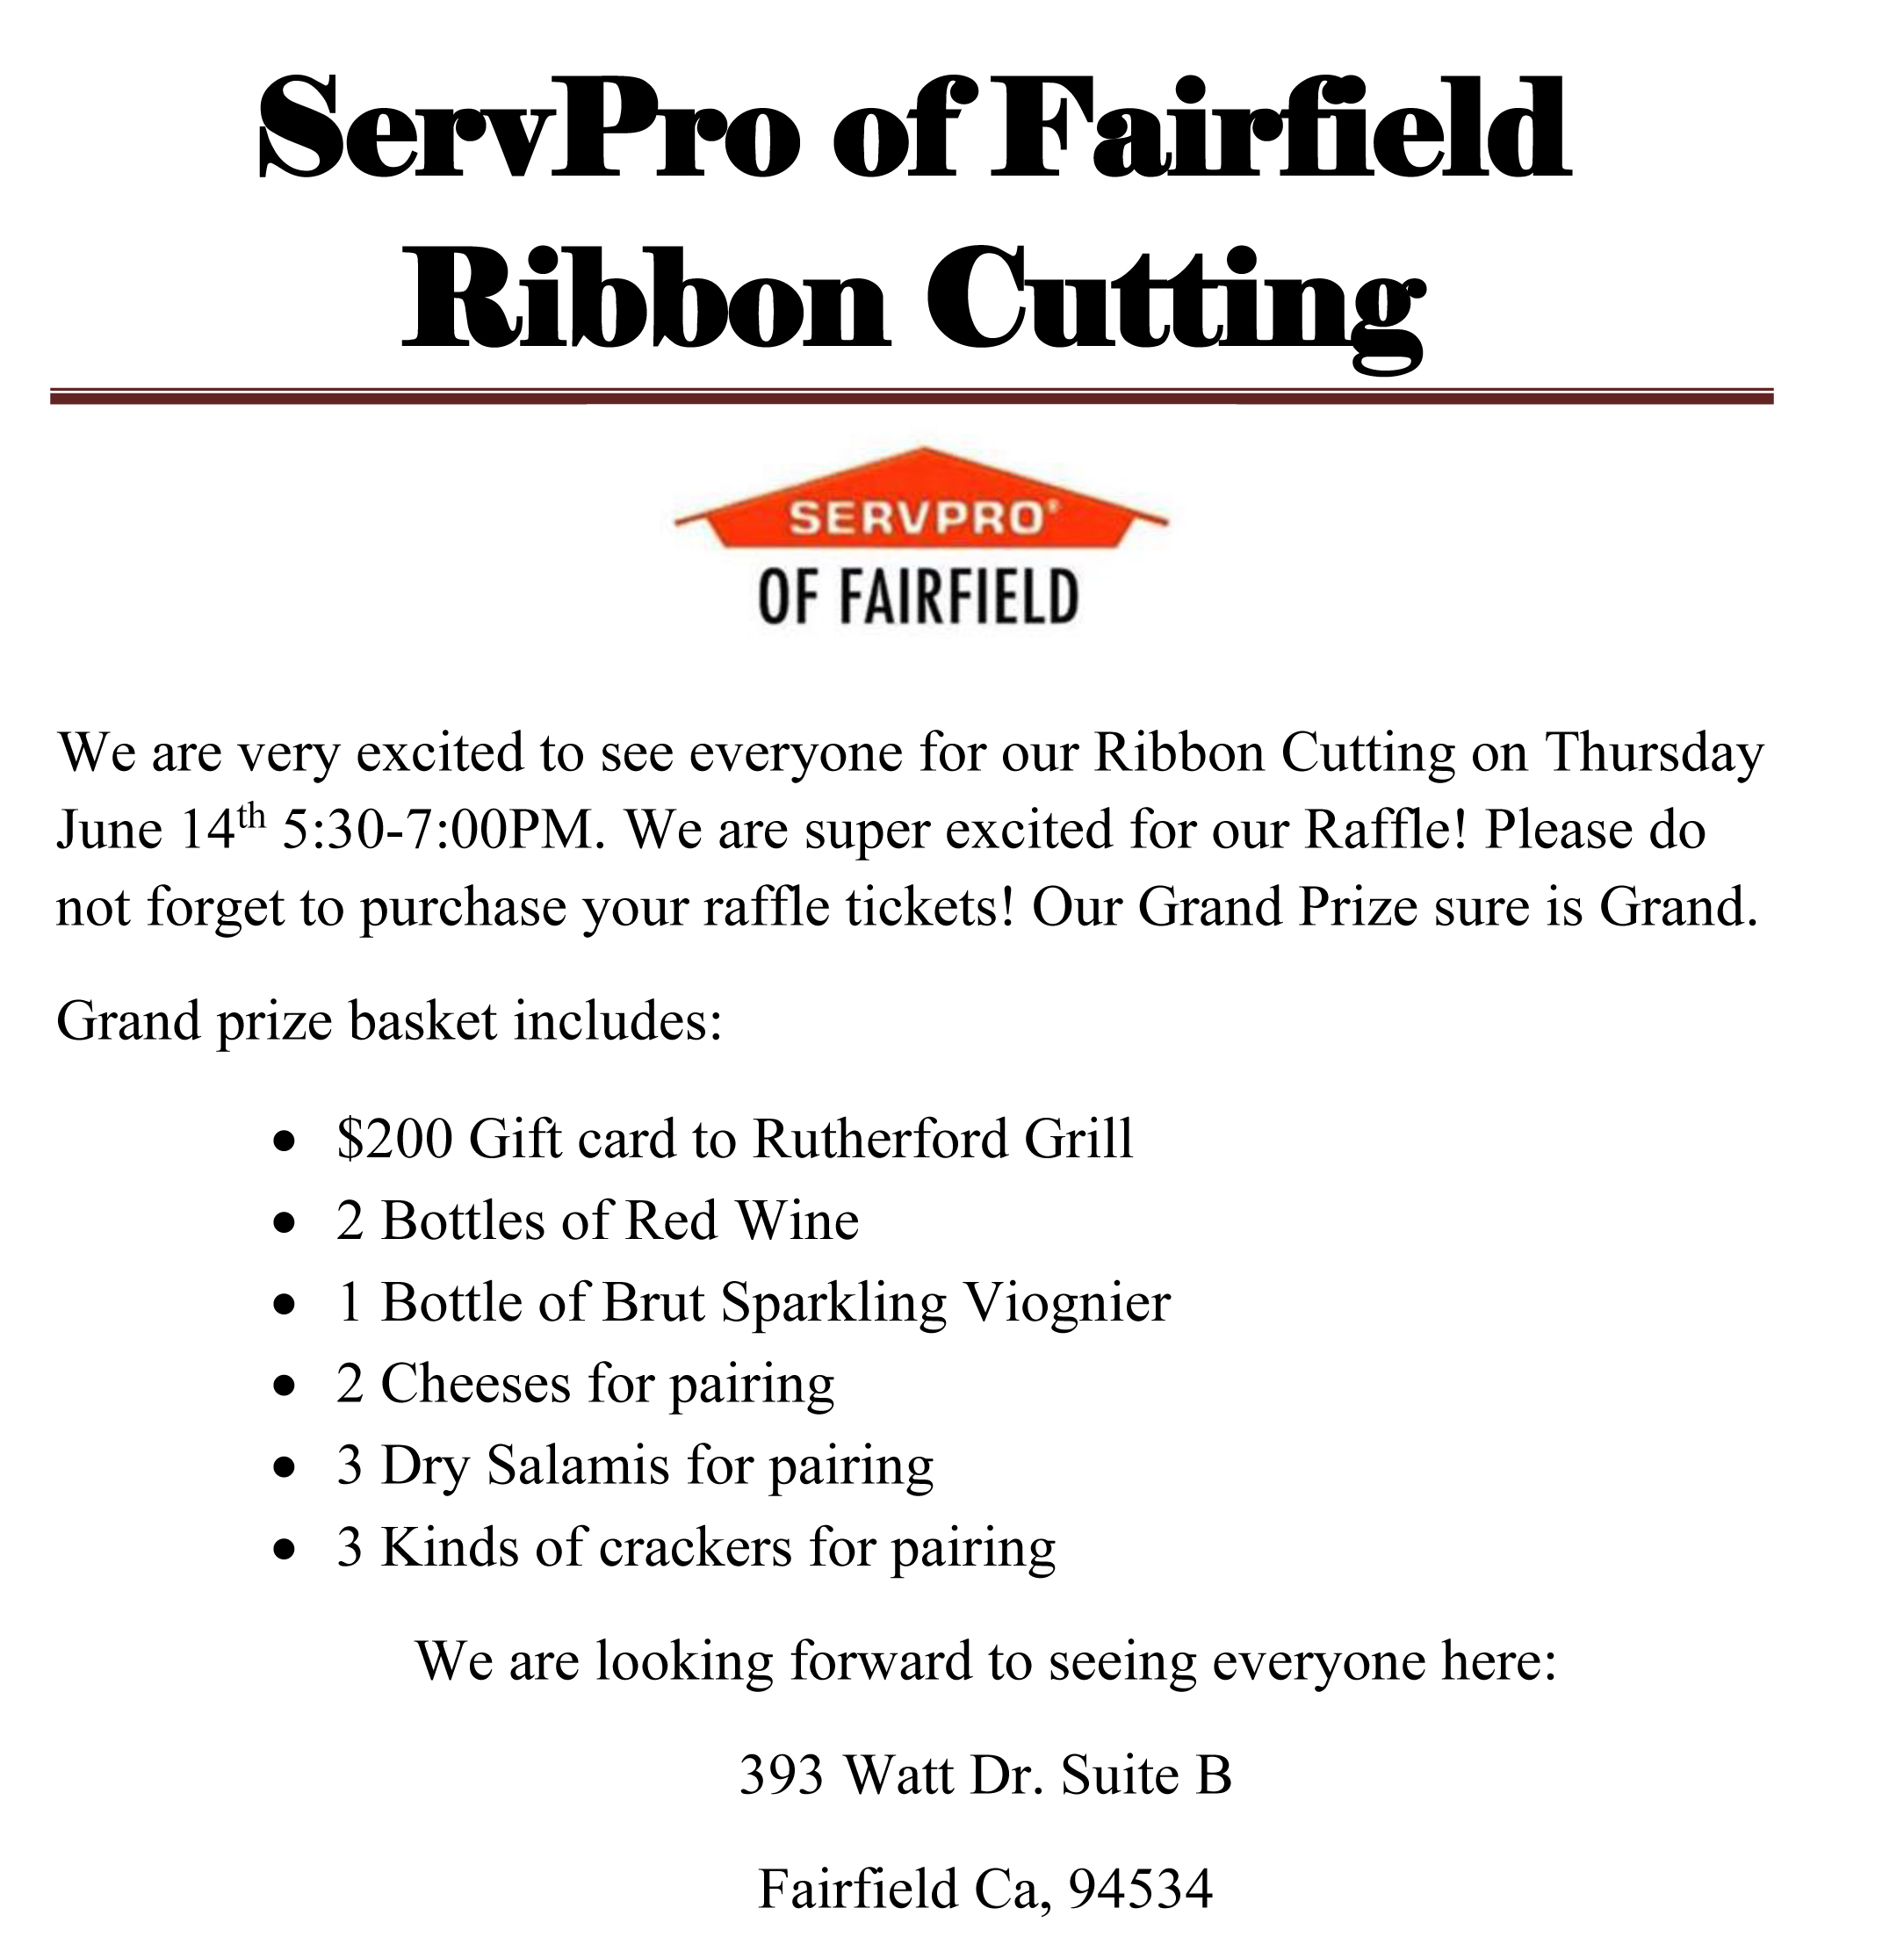 ServPro-of-Fairfield-Ribbon-Cutting-June-2018